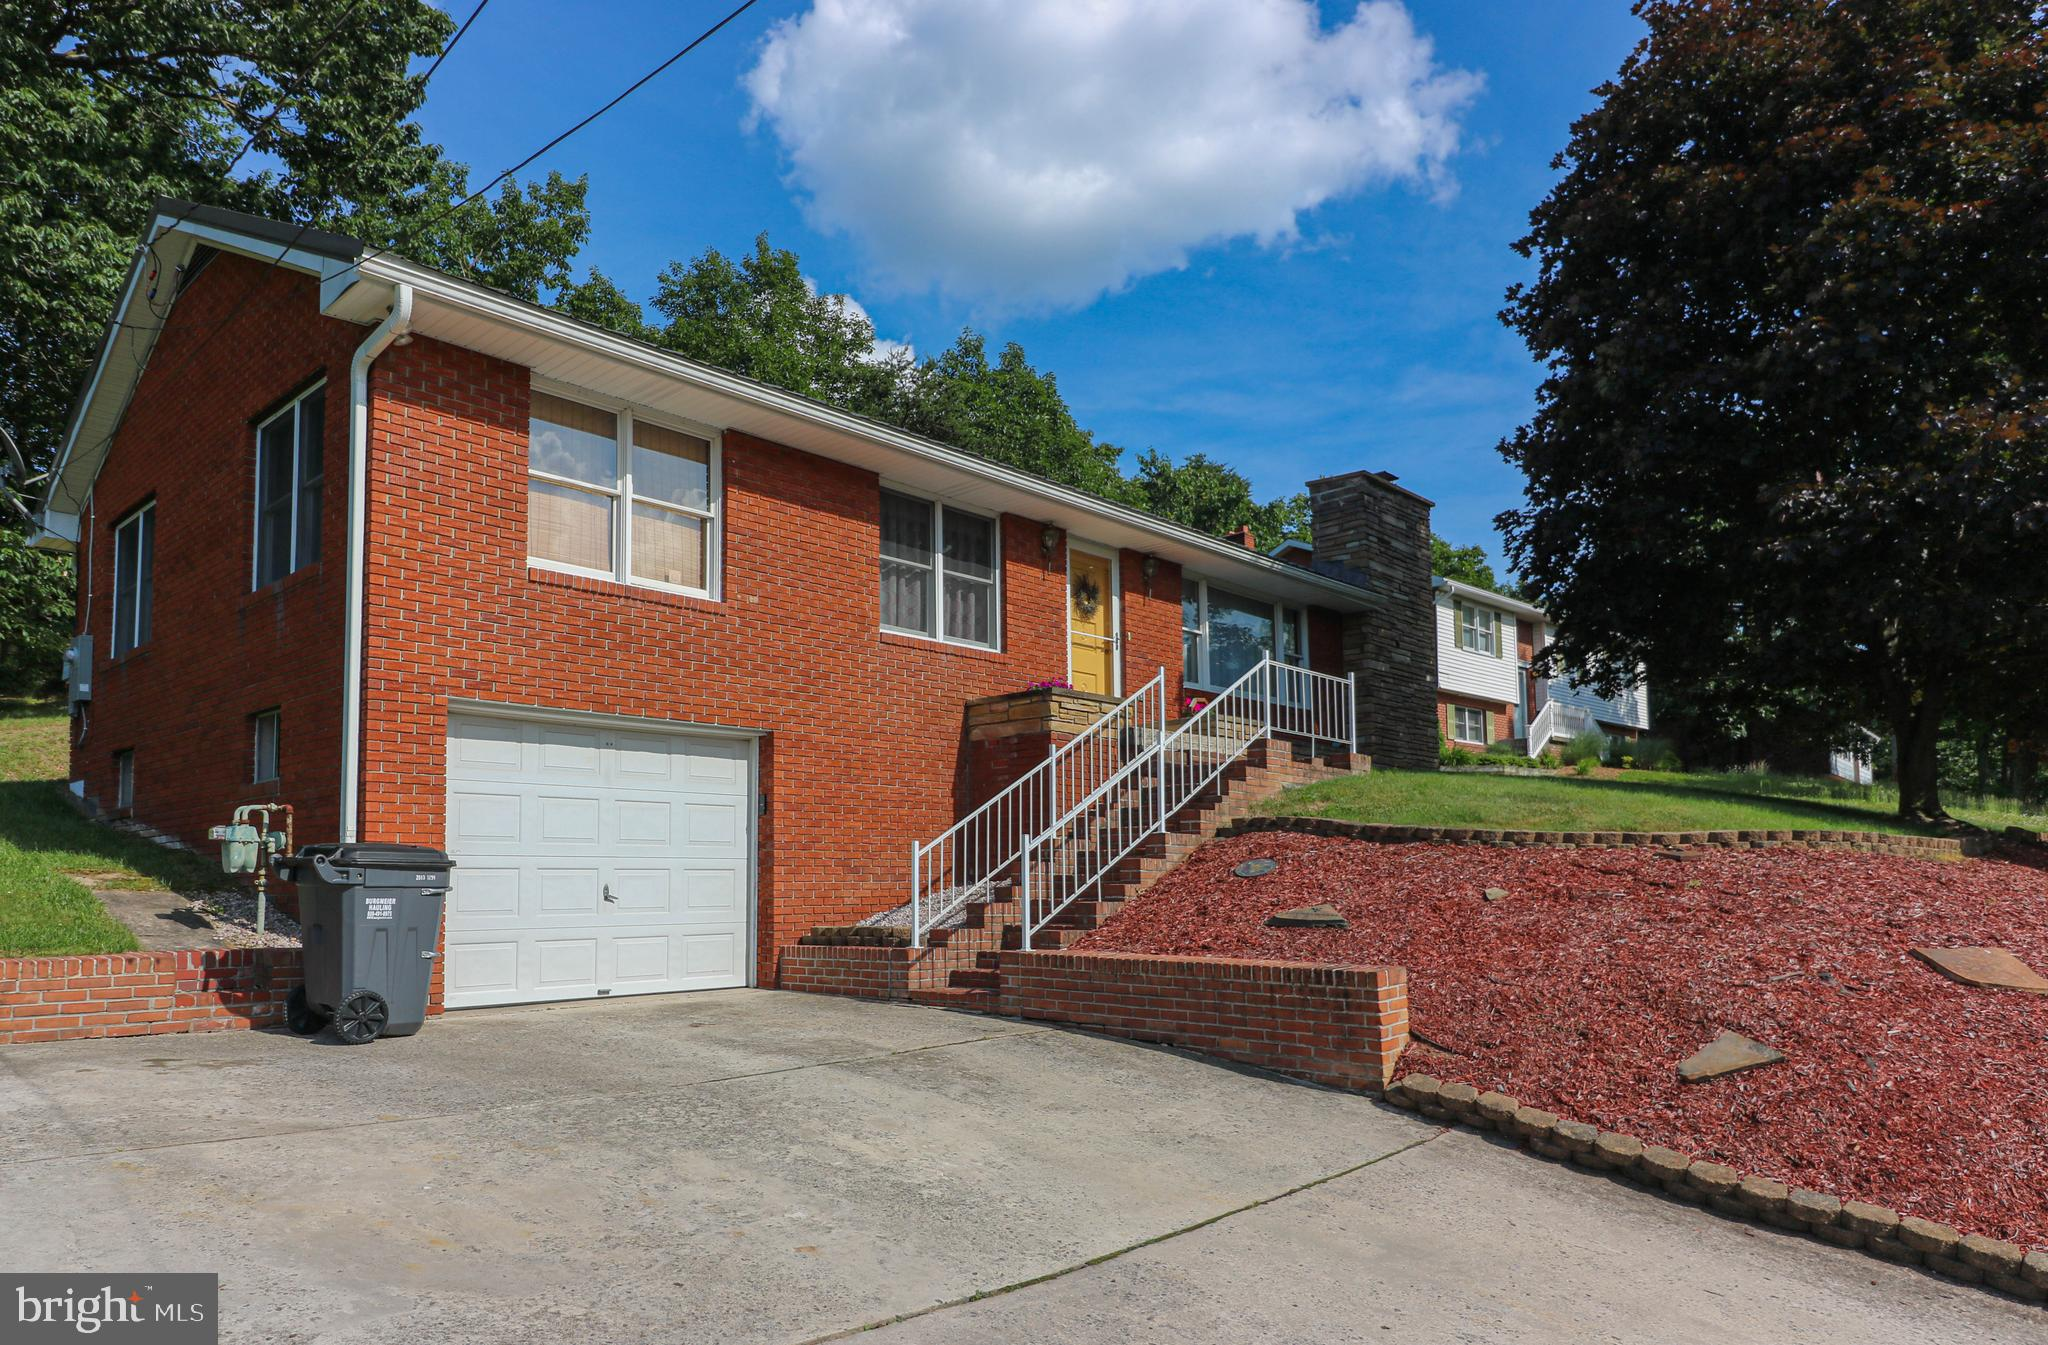 47 DAVY STREET, WILEY FORD, WV 26767